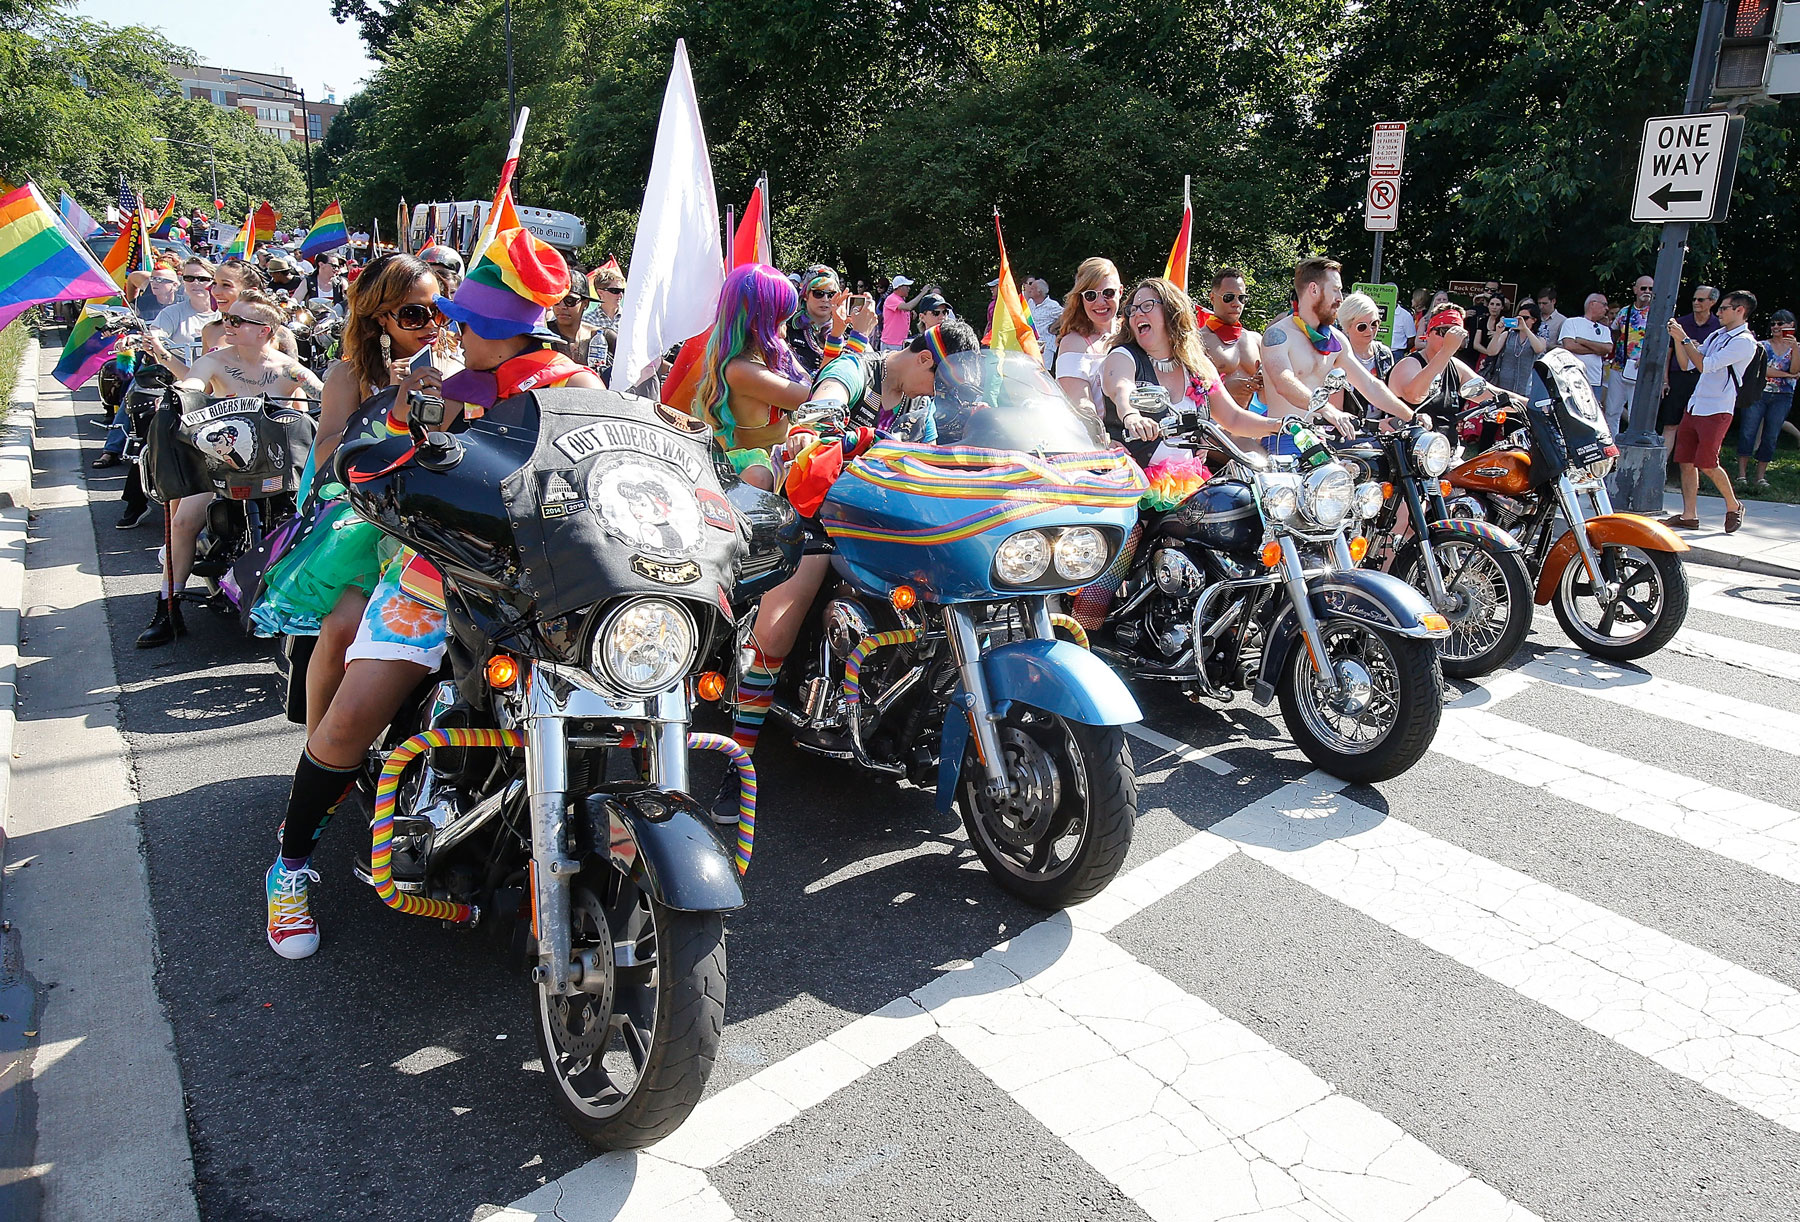 People riding motorcycles in D.C. Pride parade